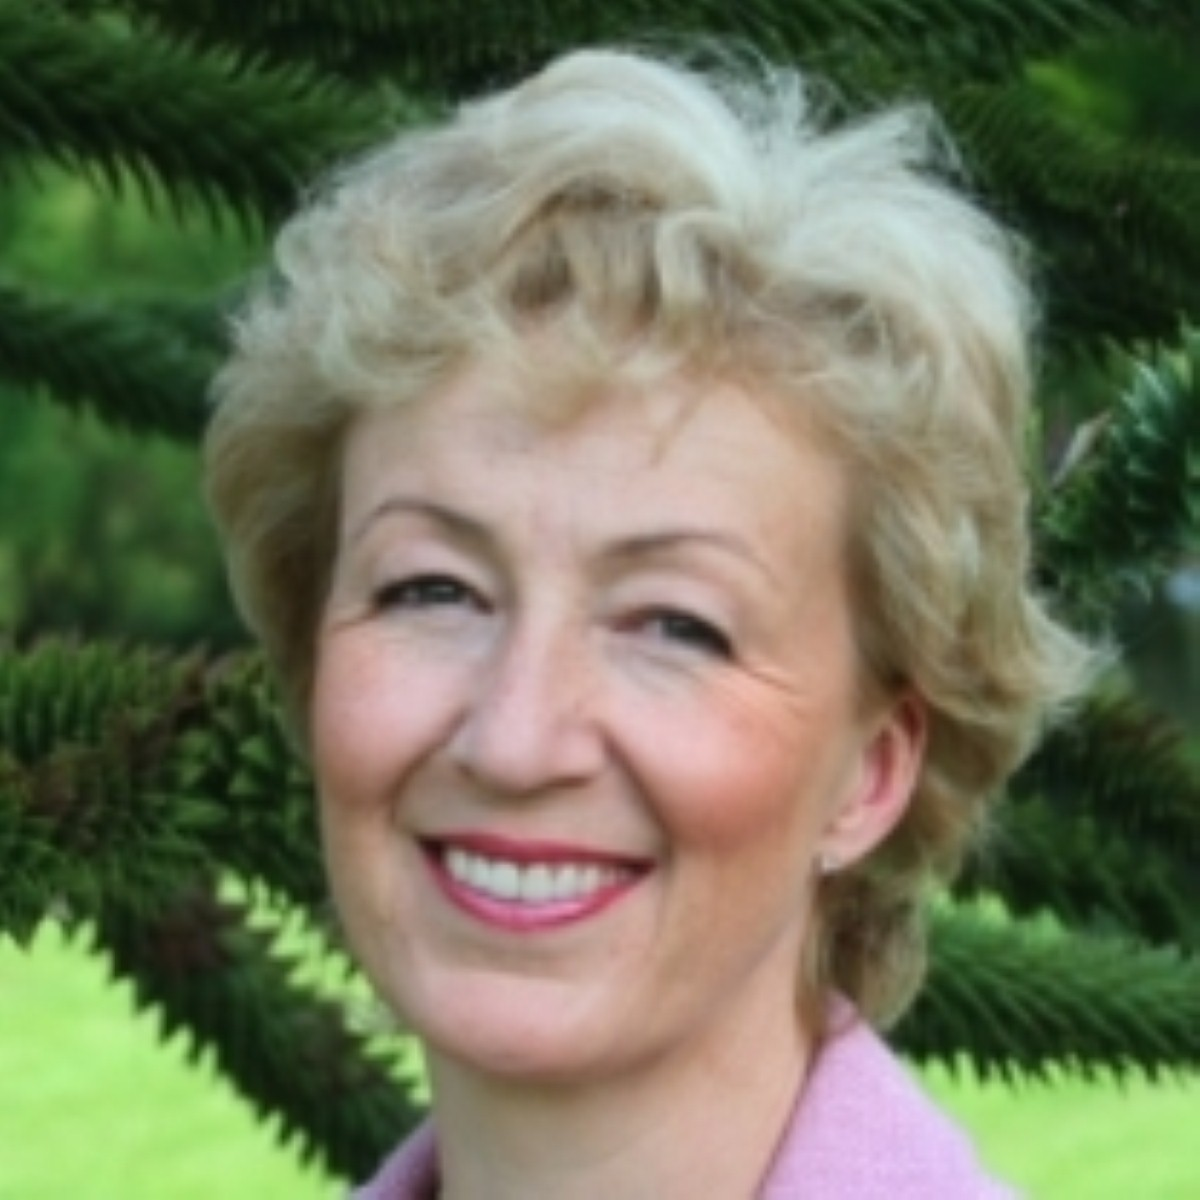 Andrea Leadsom is the Conservative MP for South Northamptonshire.